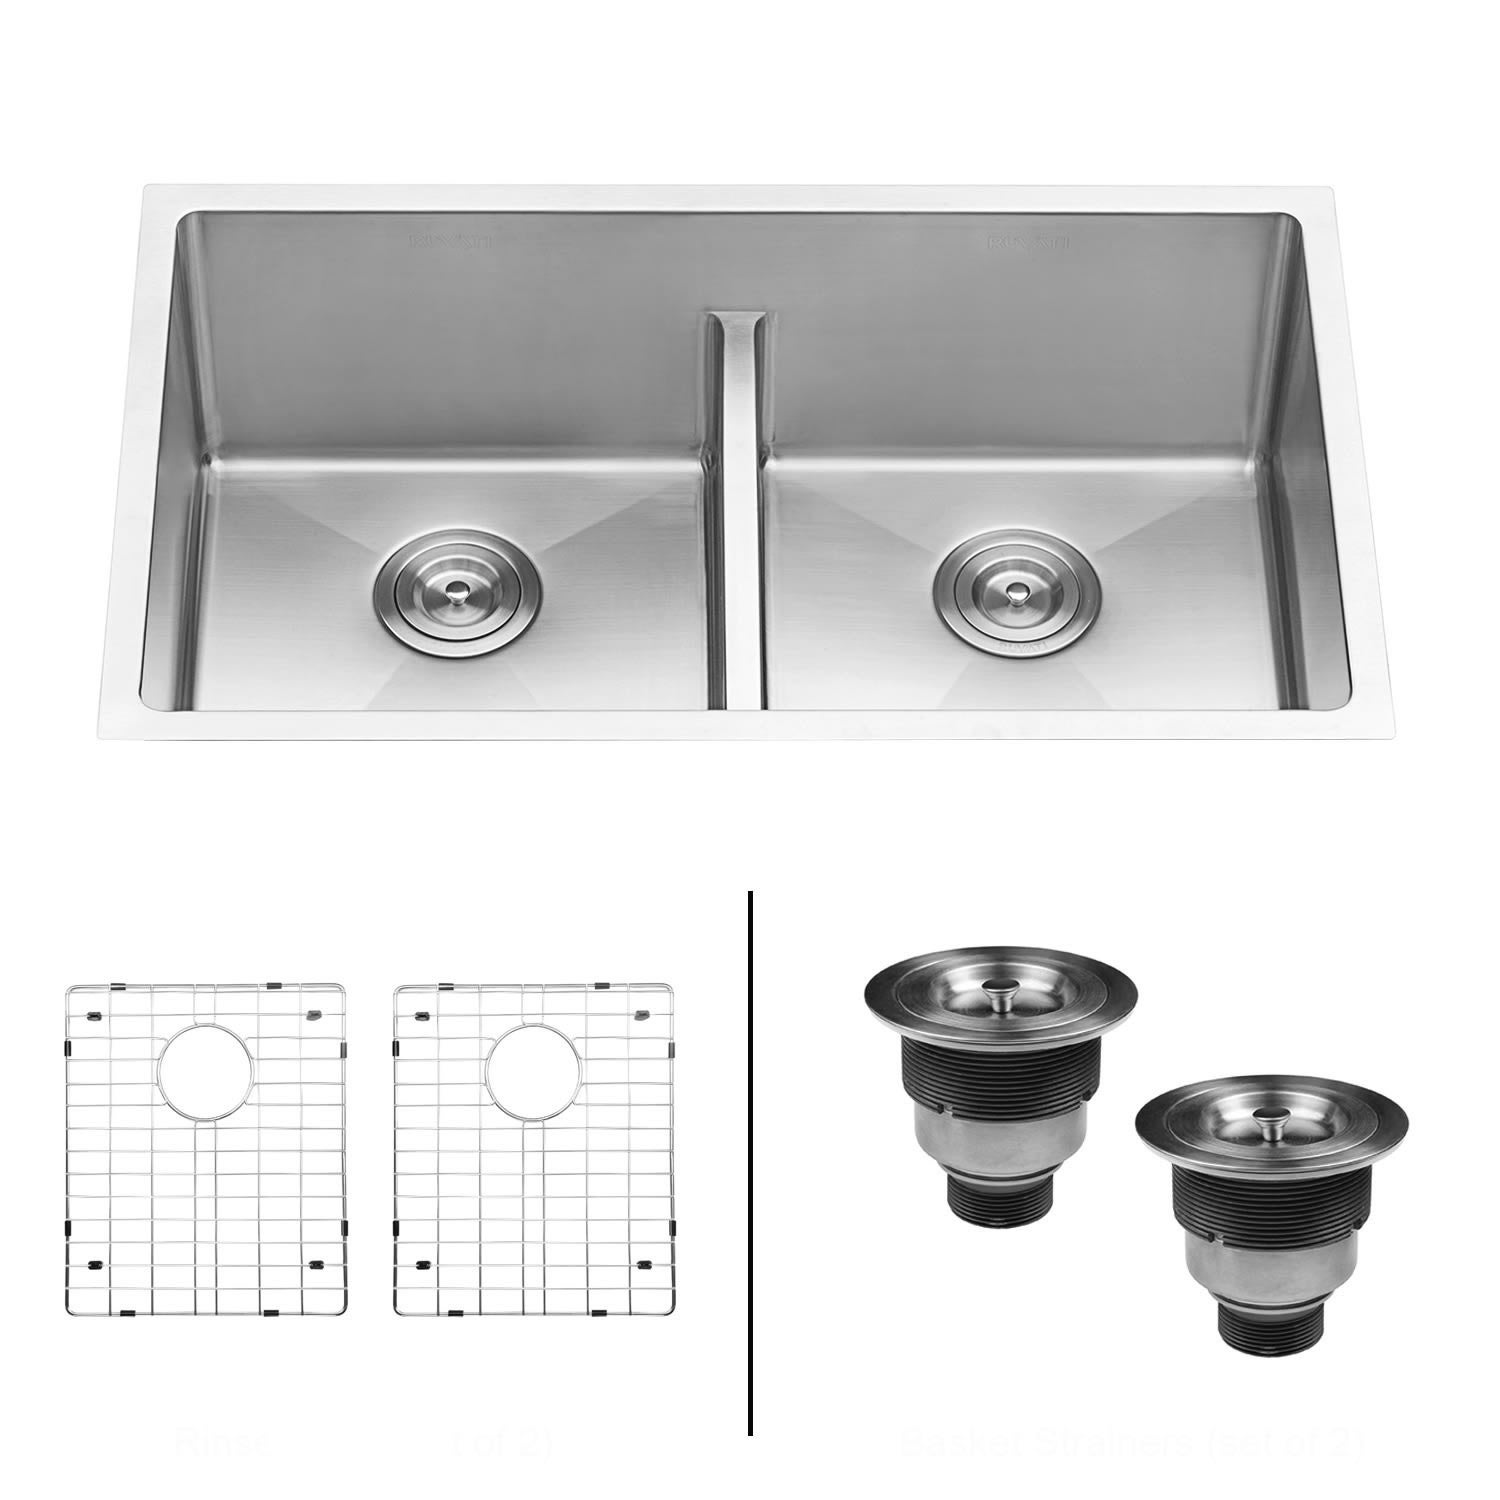 43f96e2860 16 Gauge Kitchen Sink.Shop Ruvati Rvh7355 Gravena 30 Undermount Double Basin  16 Gauge